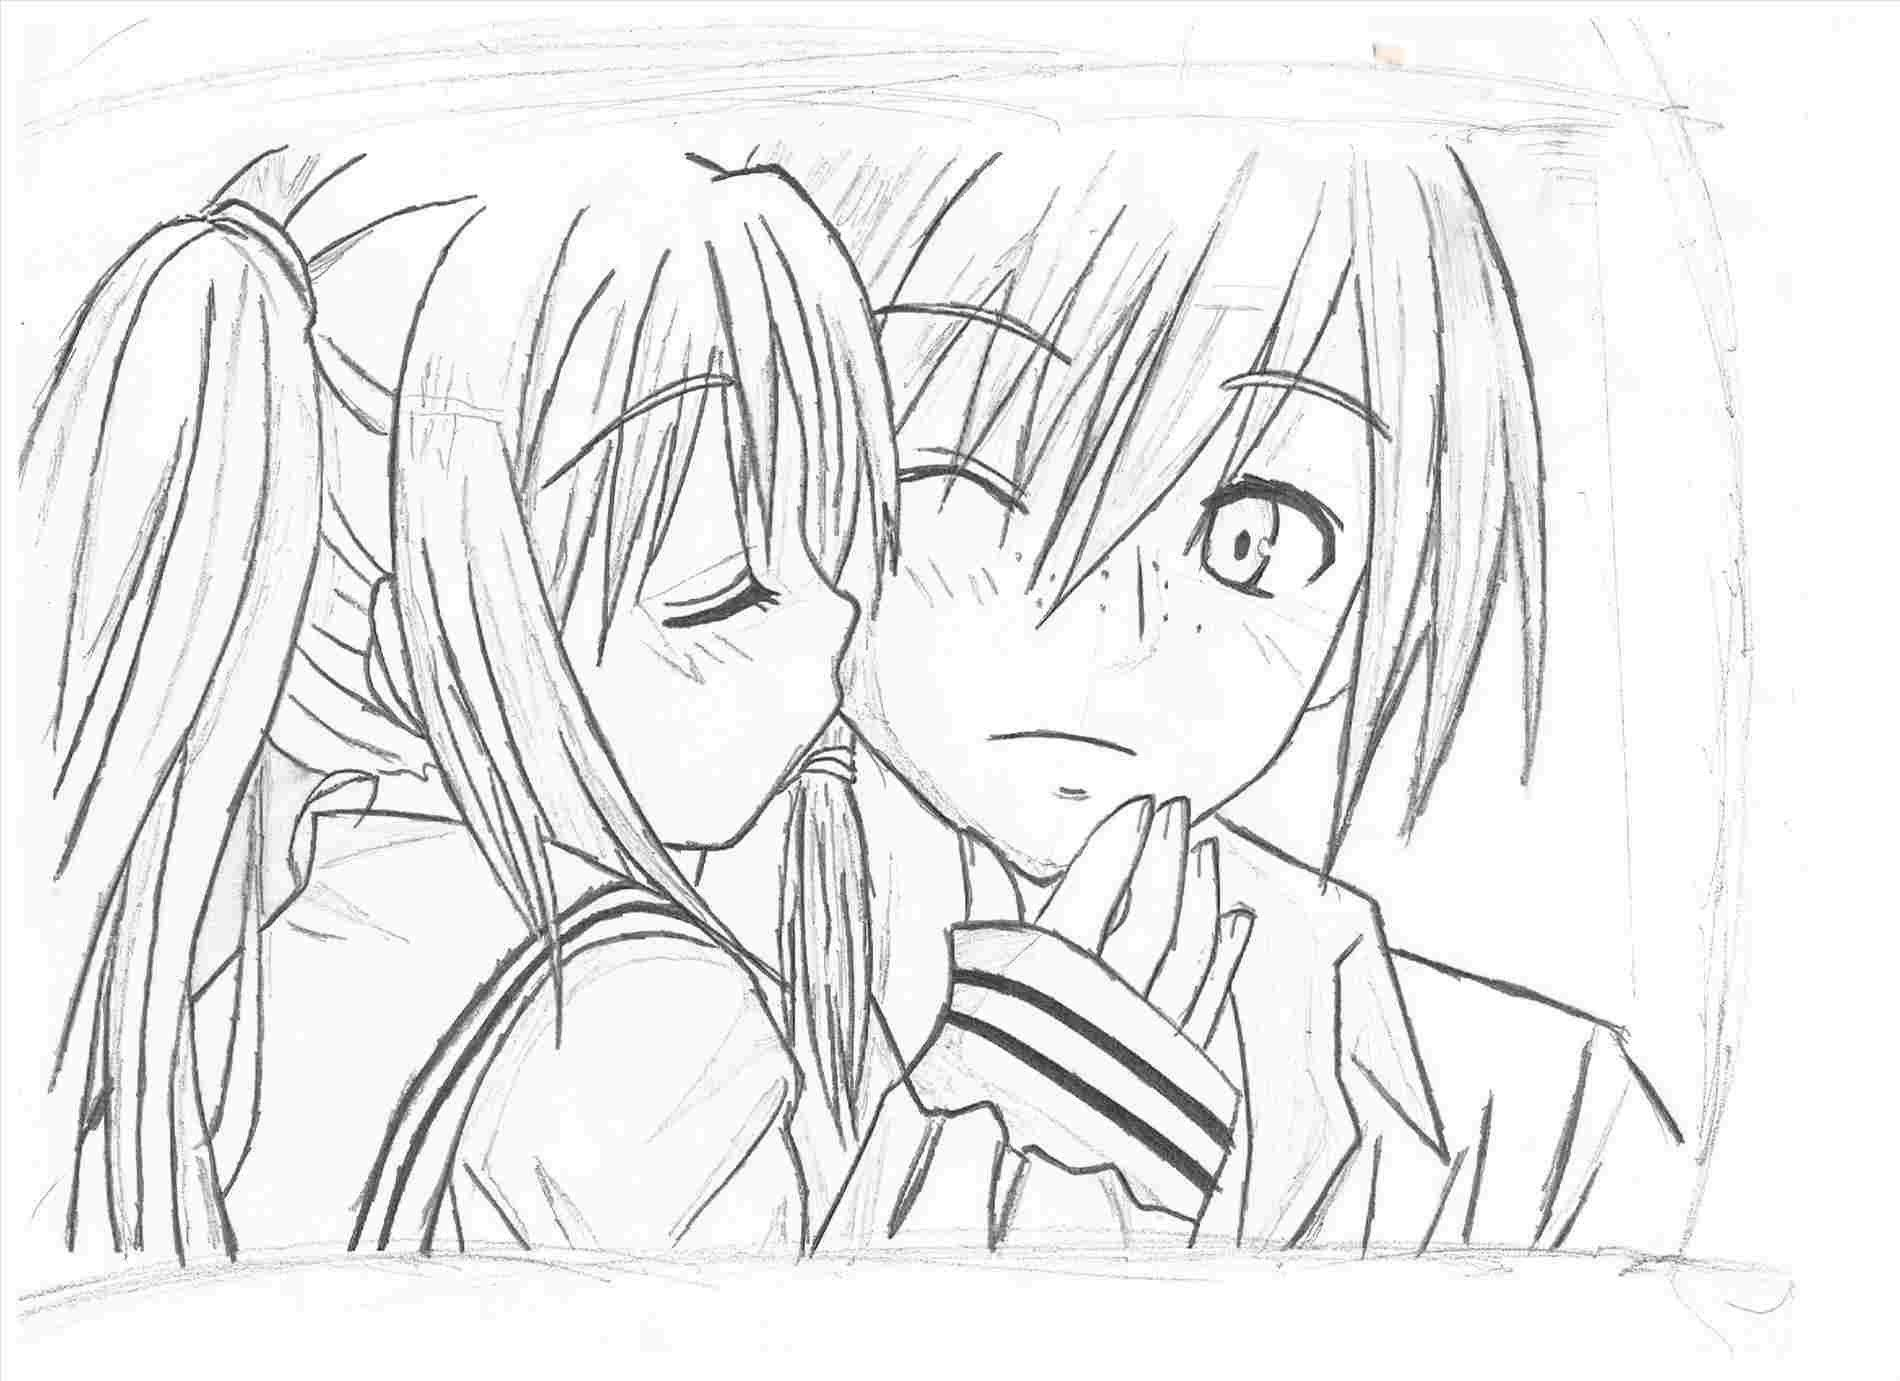 Unique Boy And Girl Kiss In Bed Anime Boy And Girl Drawing Boy Drawing Cartoon Drawings